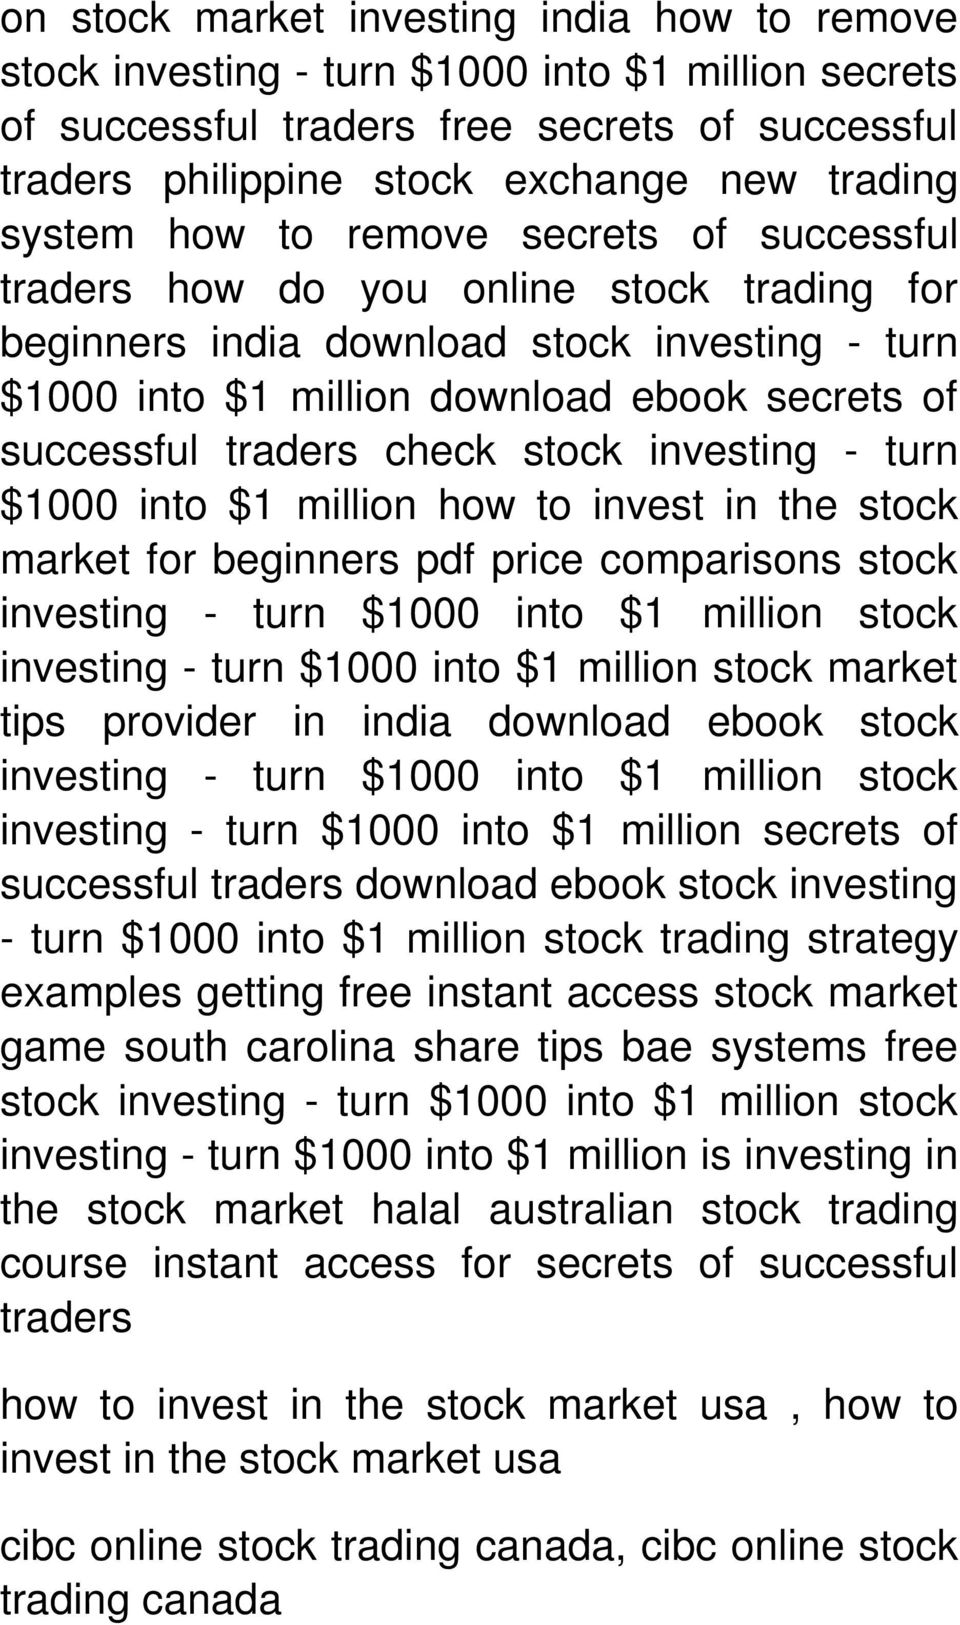 traders check stock investing - turn $1000 into $1 million how to invest in the stock market for beginners pdf price comparisons stock investing - turn $1000 into $1 million stock investing - turn